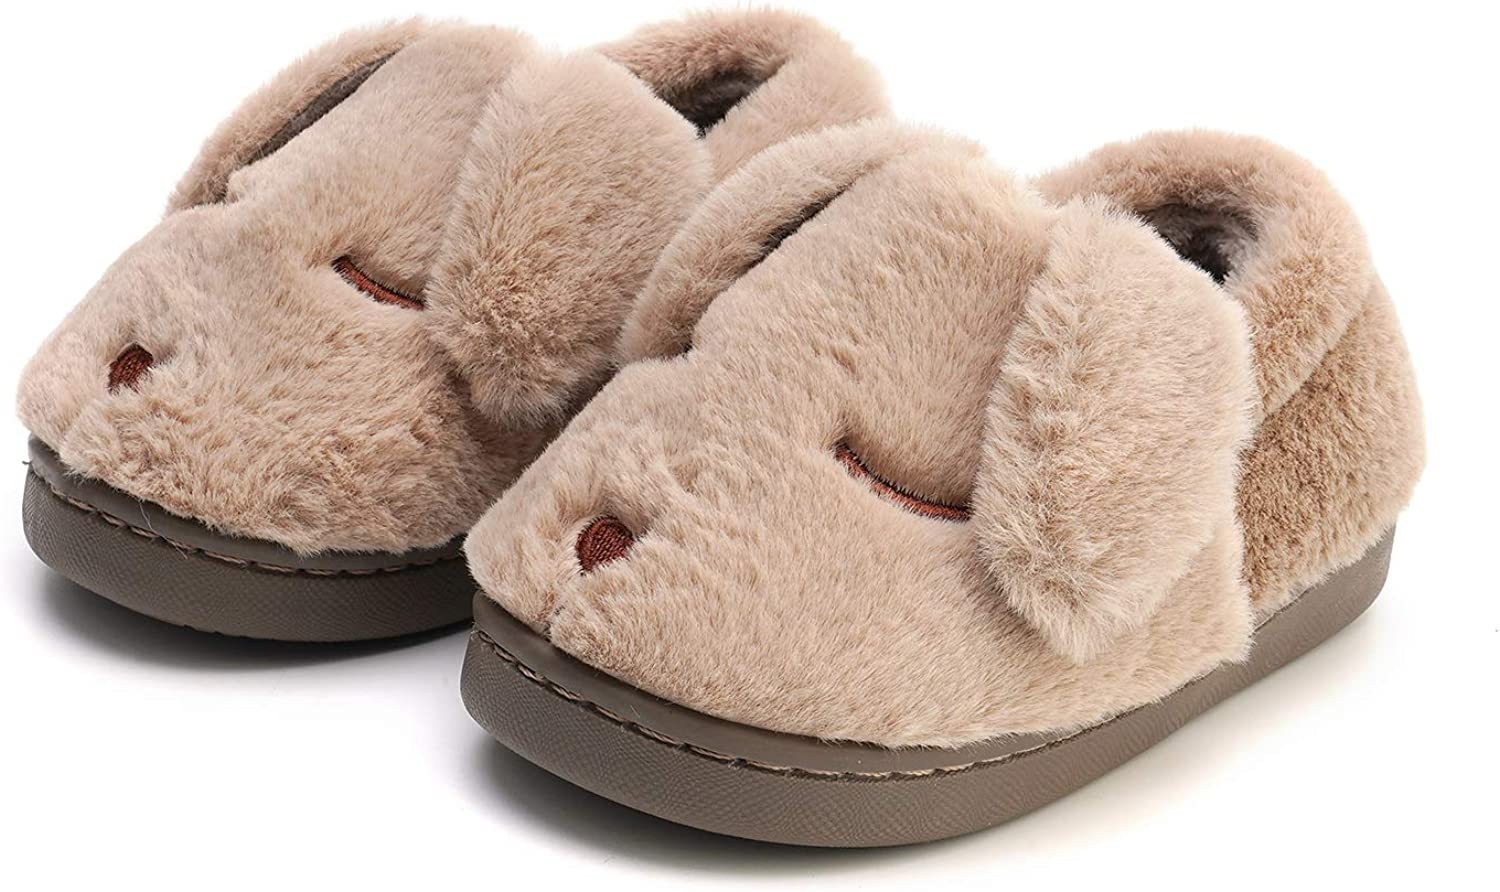 MEMON Baby Boys Fuzzy Slippers | Cute Baby Girls Slippers | Infant Non-Slip Indoor Shoes | Kids Home Shoes